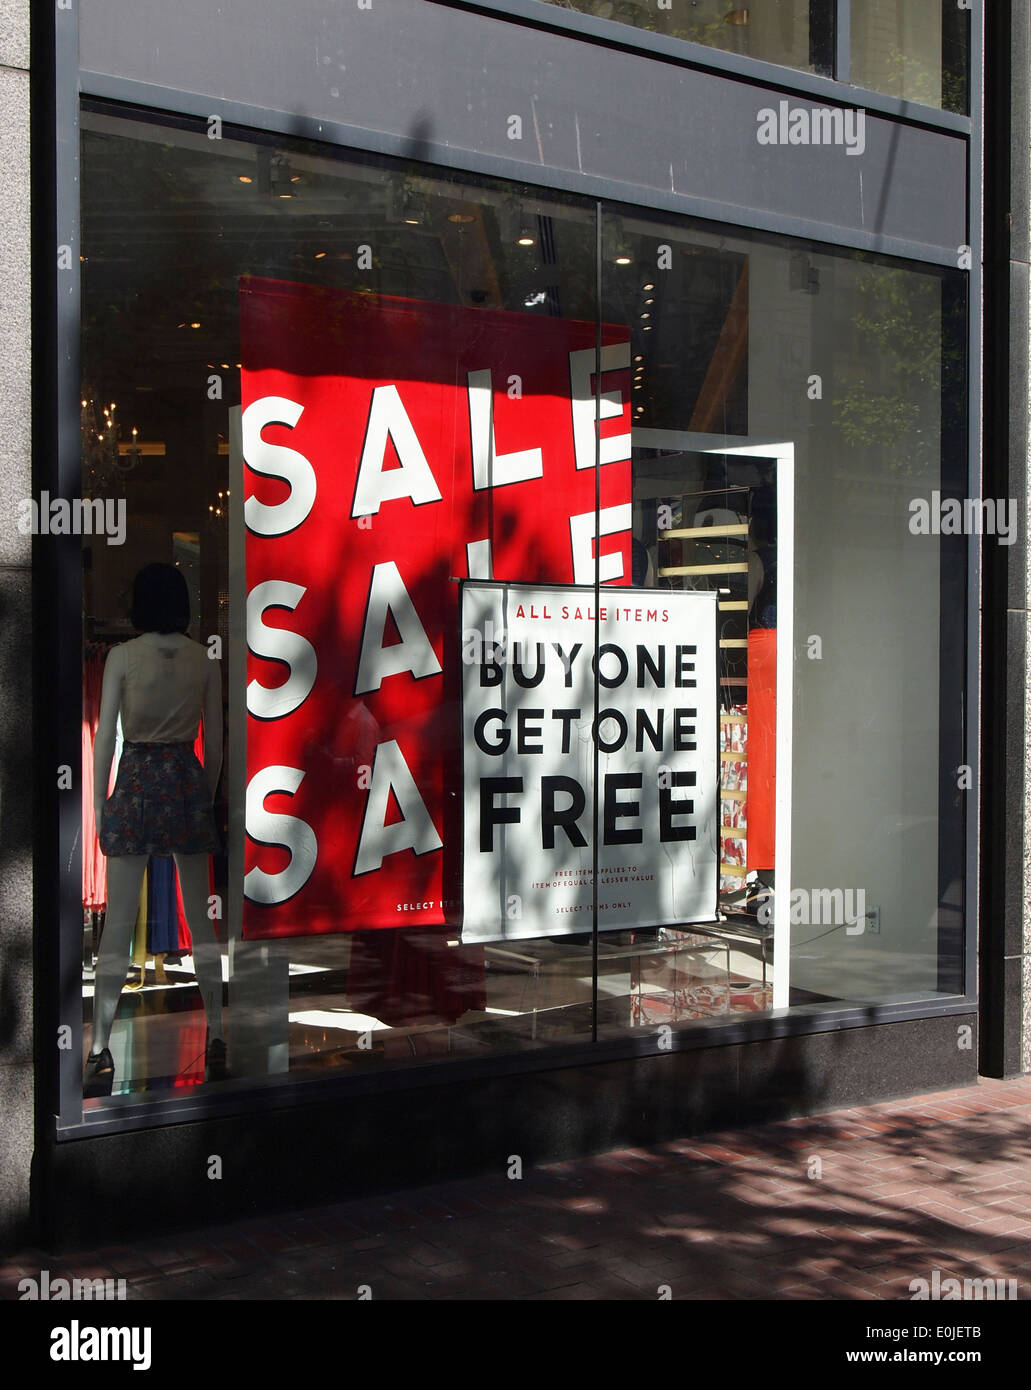 store window display sale buy one get one free signs - Stock Image